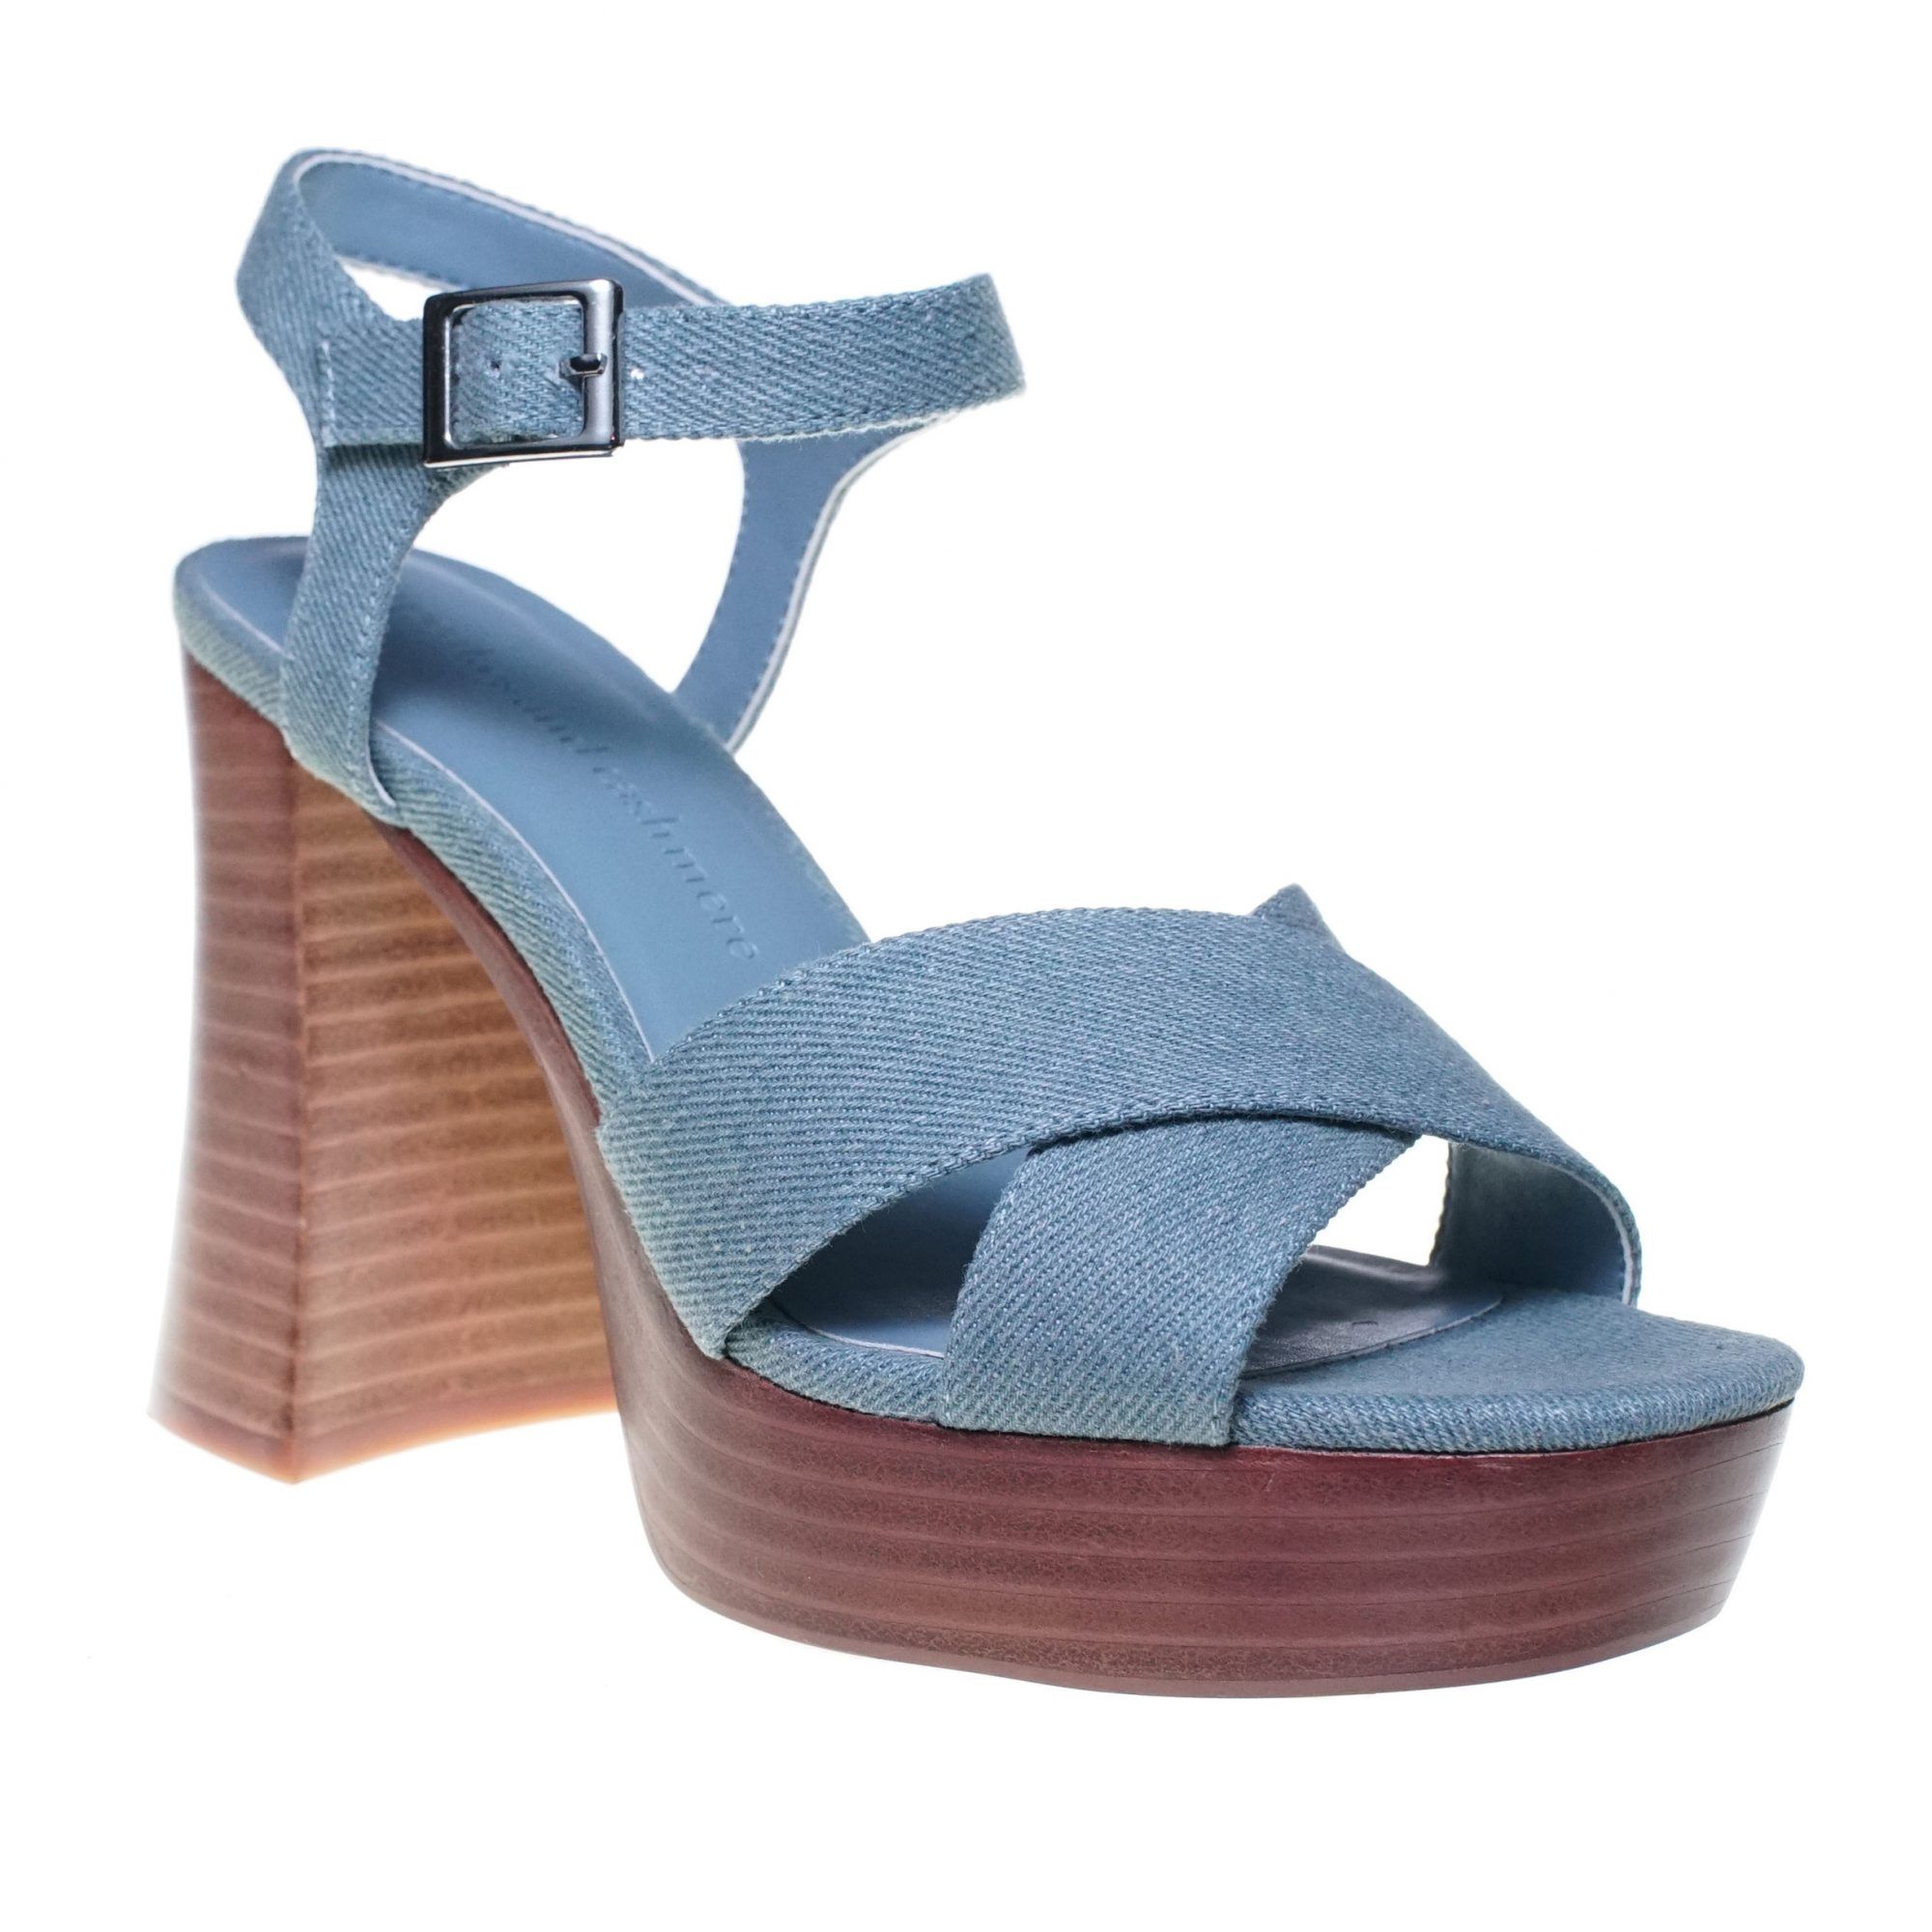 Chambray denim platform sandal from Cupcakes and Cashmere shoe collection at Nordstrom